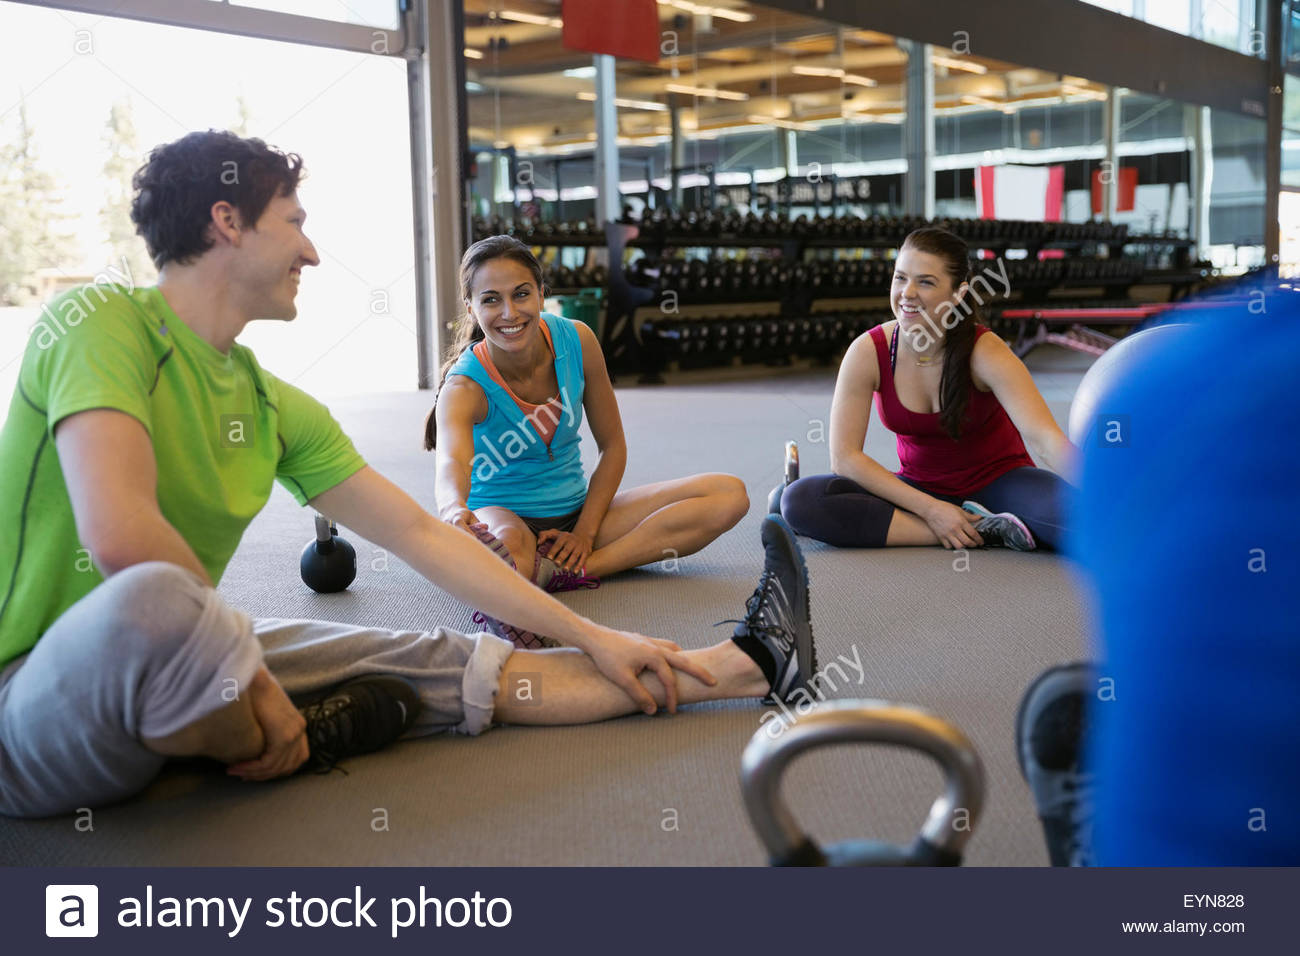 Classe d'exercice stretching ischio-jambiers in gym Photo Stock